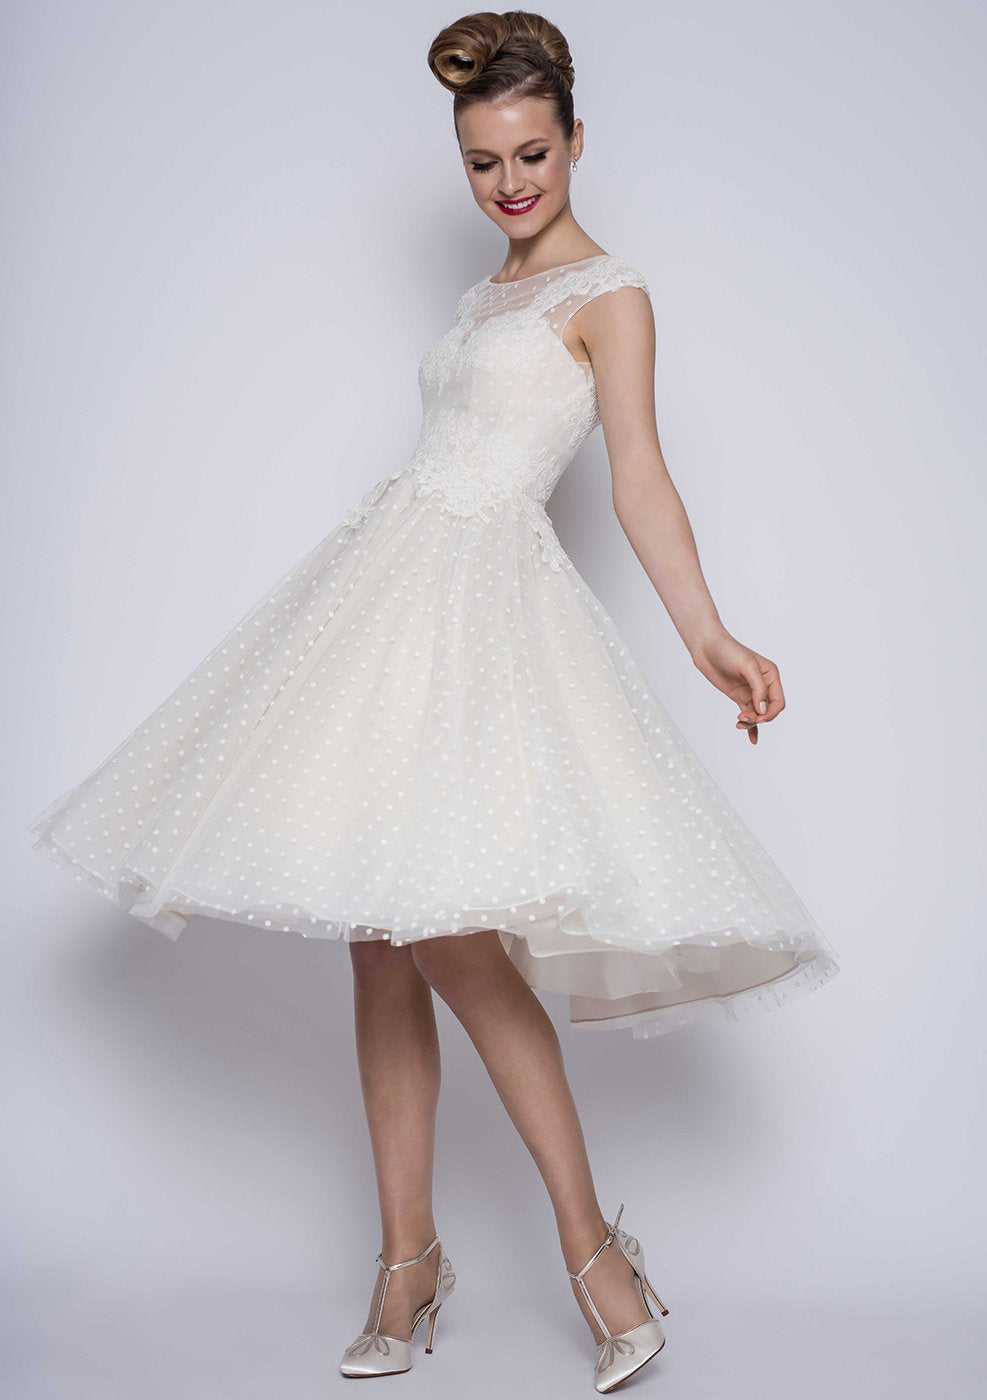 1950s Short Tea Length Wedding Dresses London UK